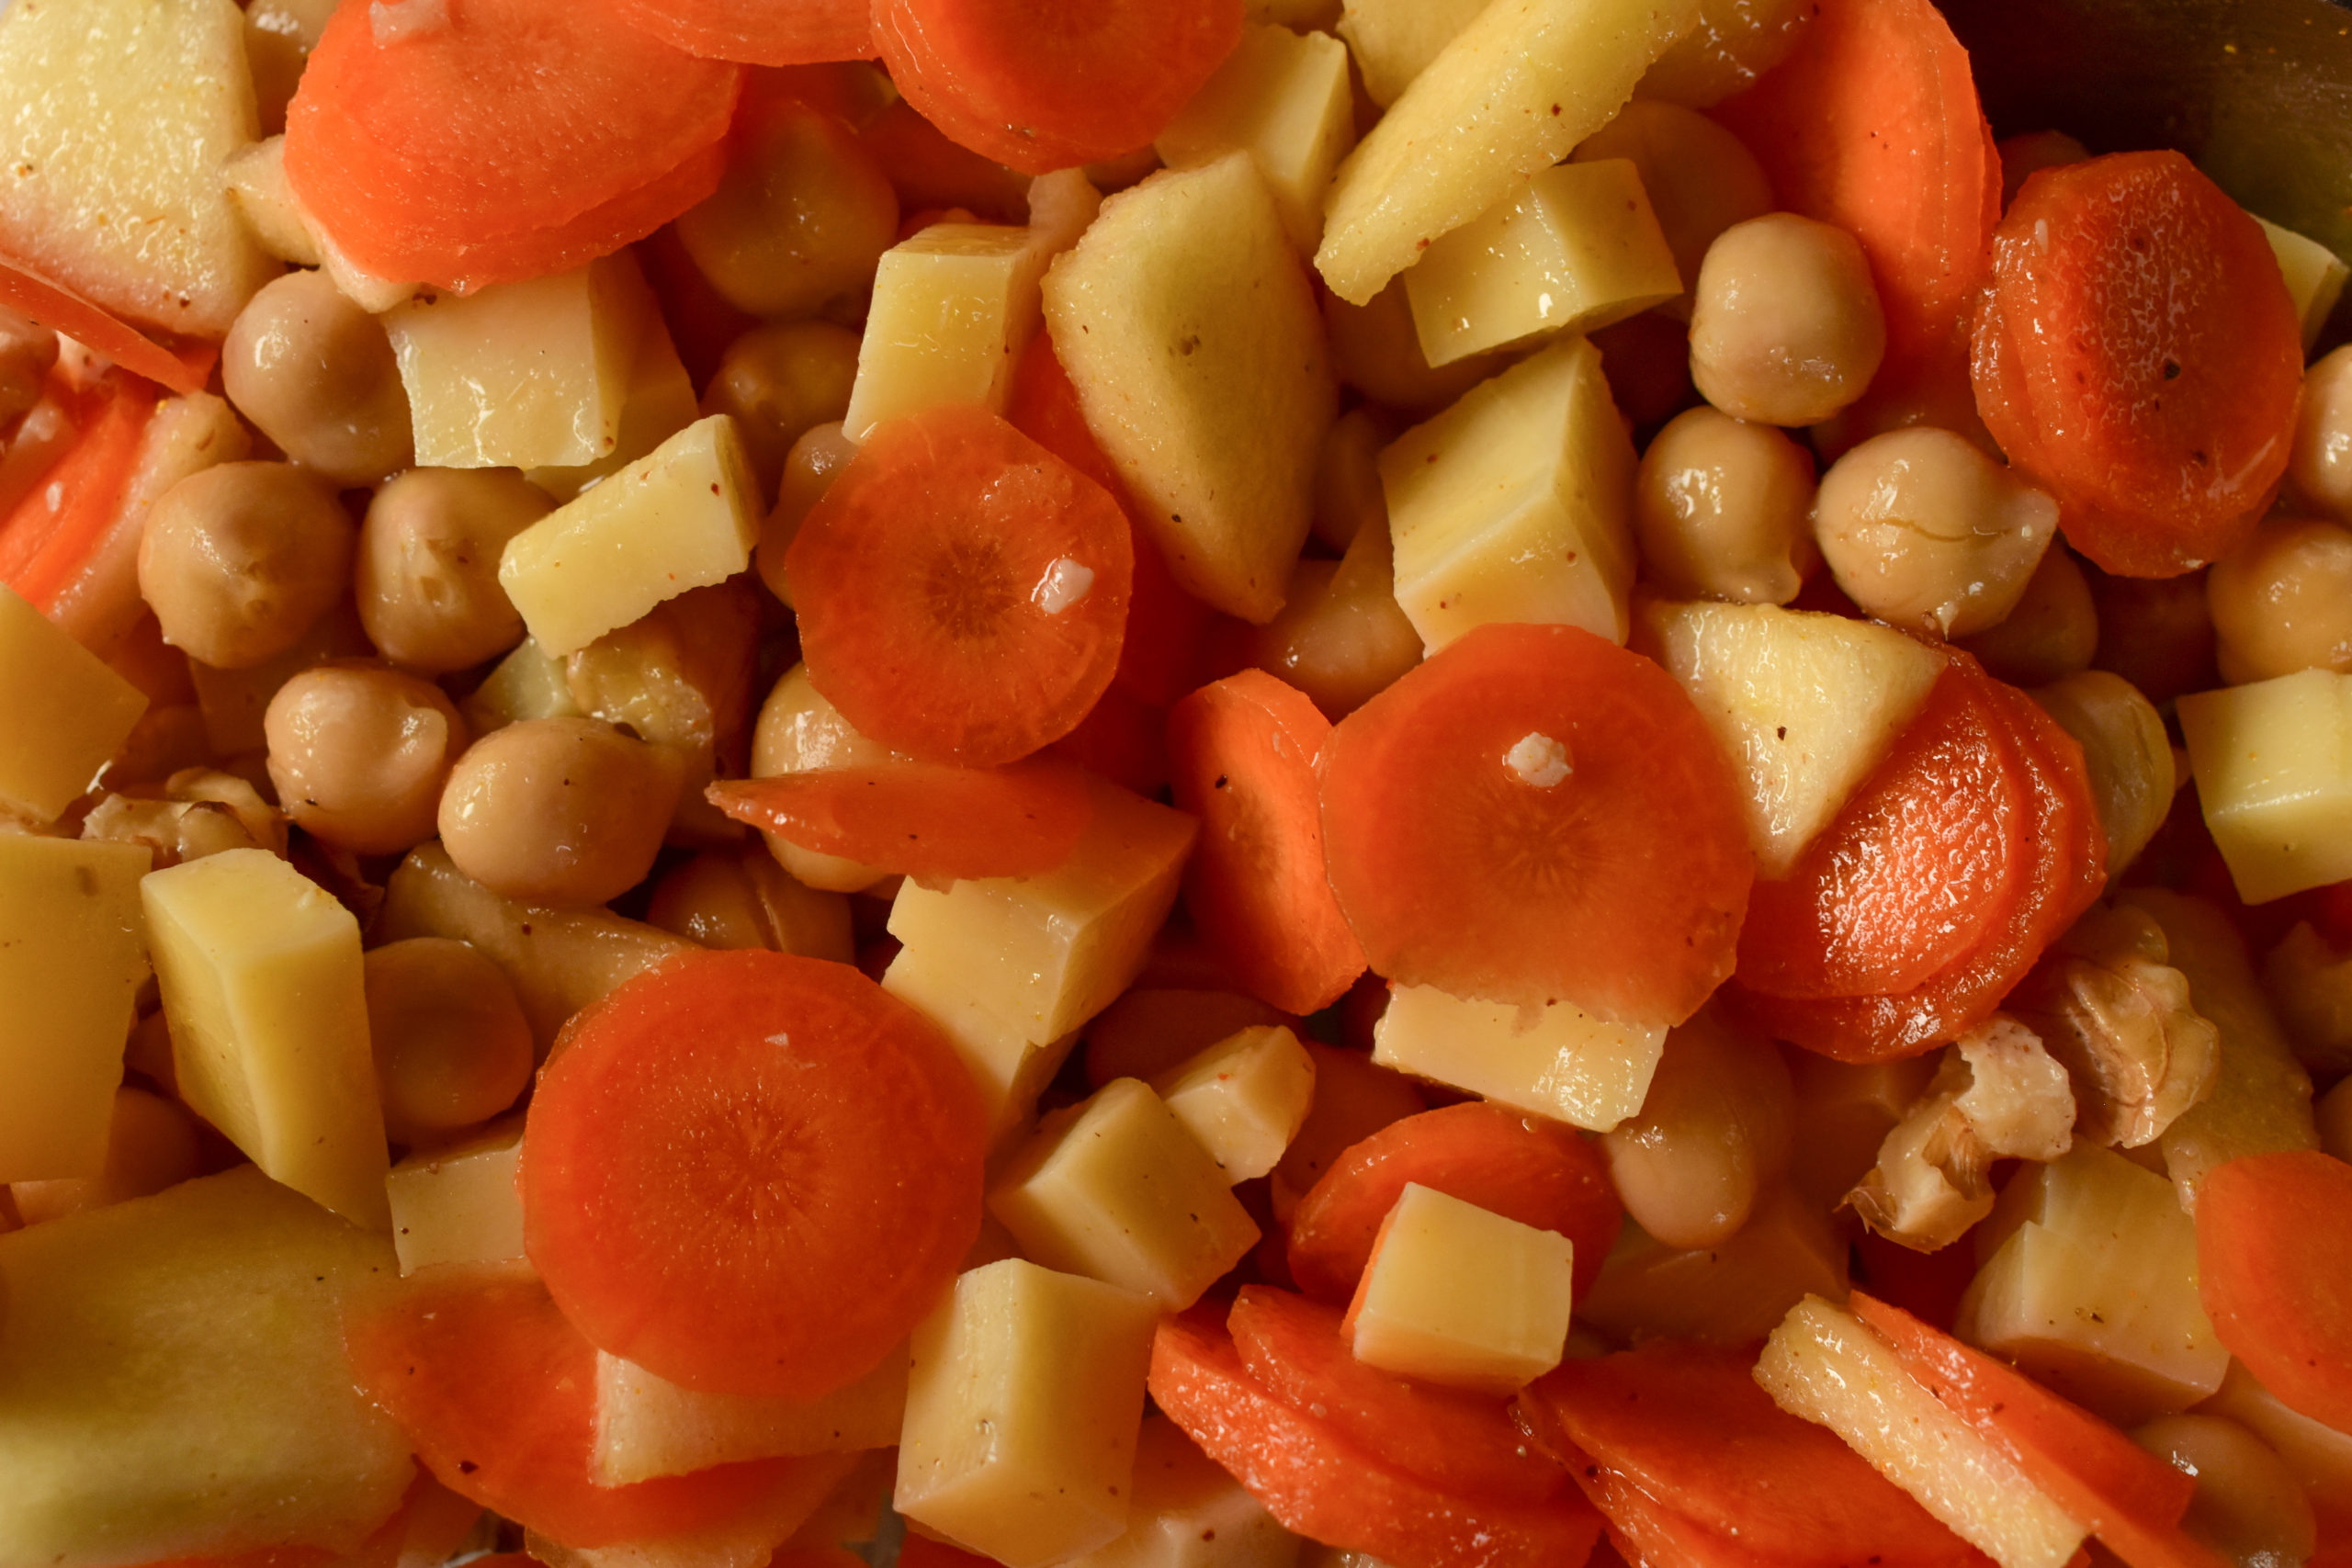 Spicy salad with chickpeas, carrots, walnuts and apples